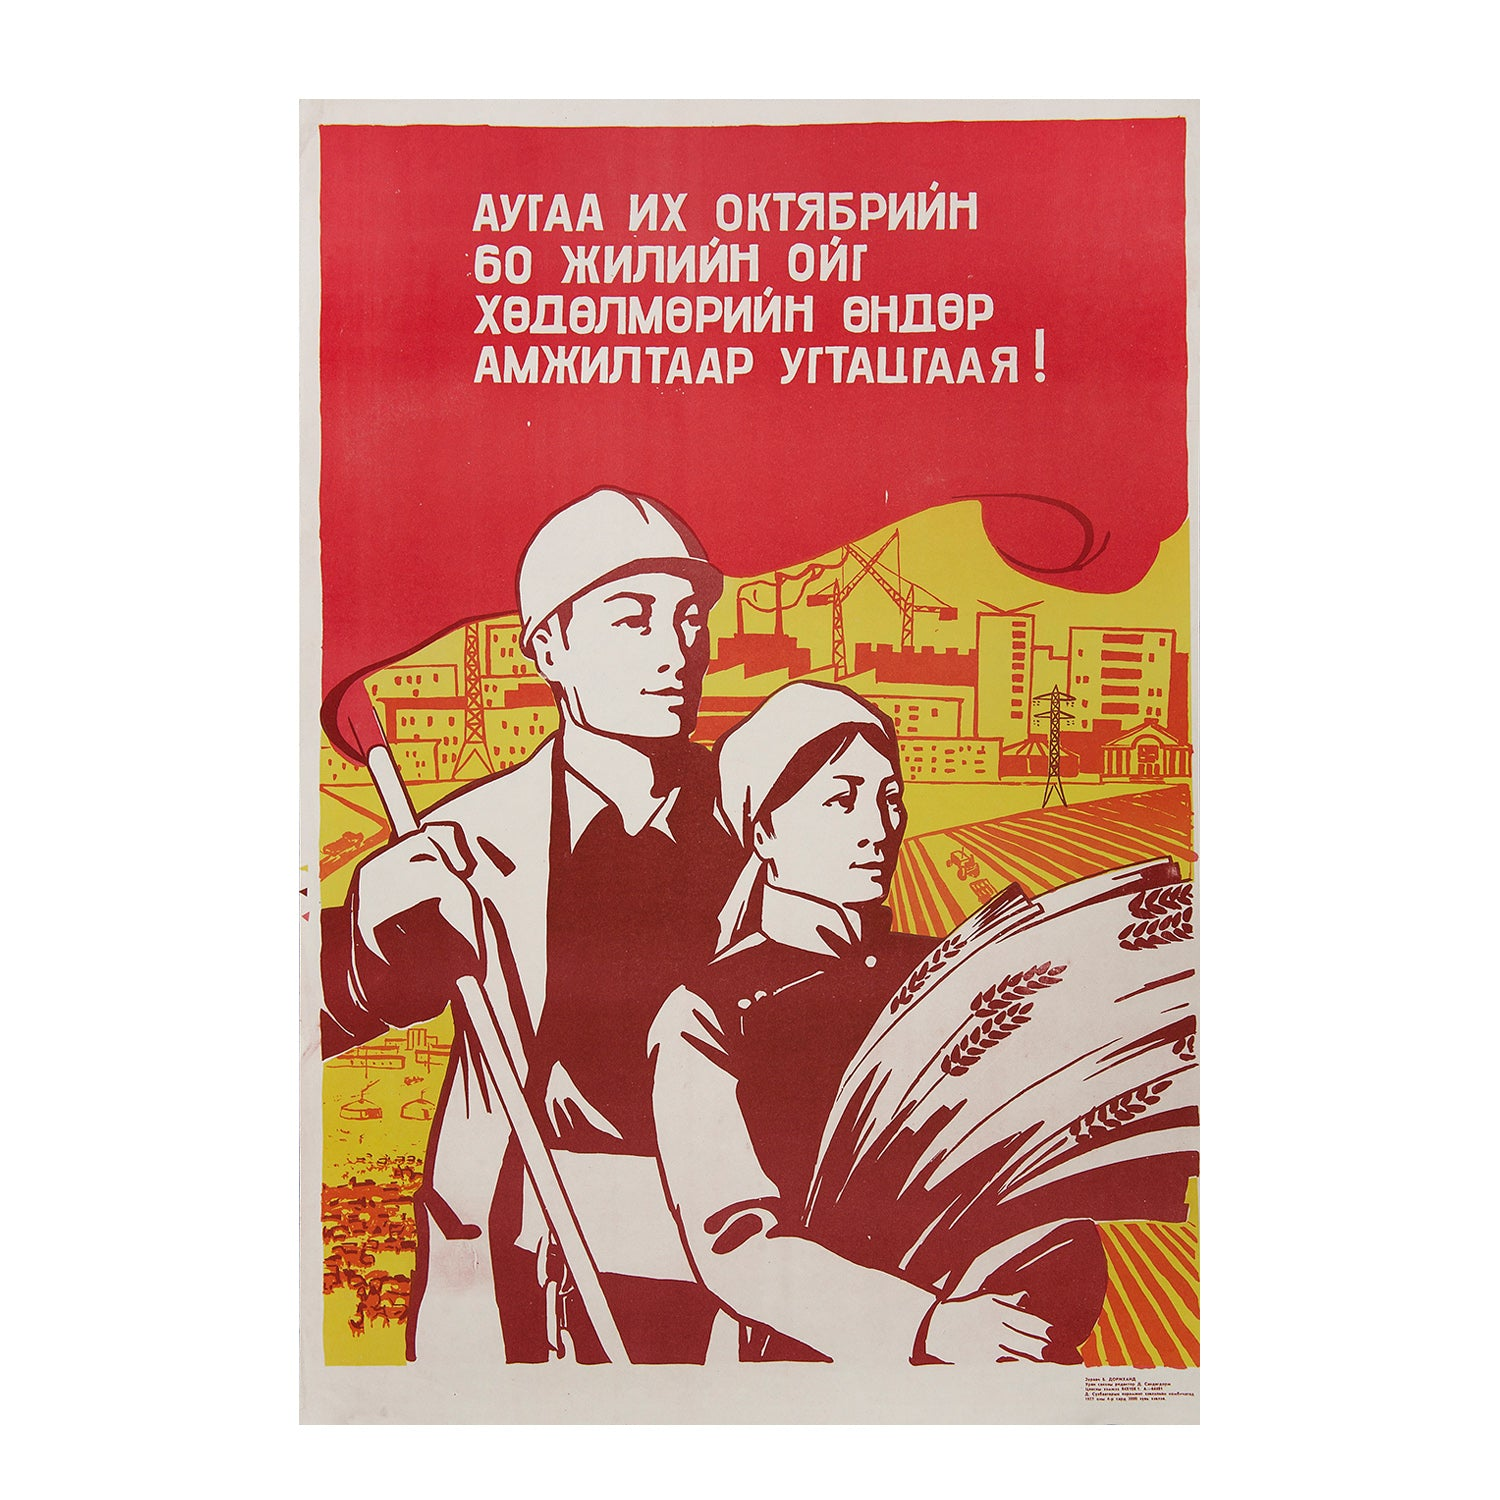 Let's celebrate the 60th anniversary of the Great October Revolution with great successes at work!